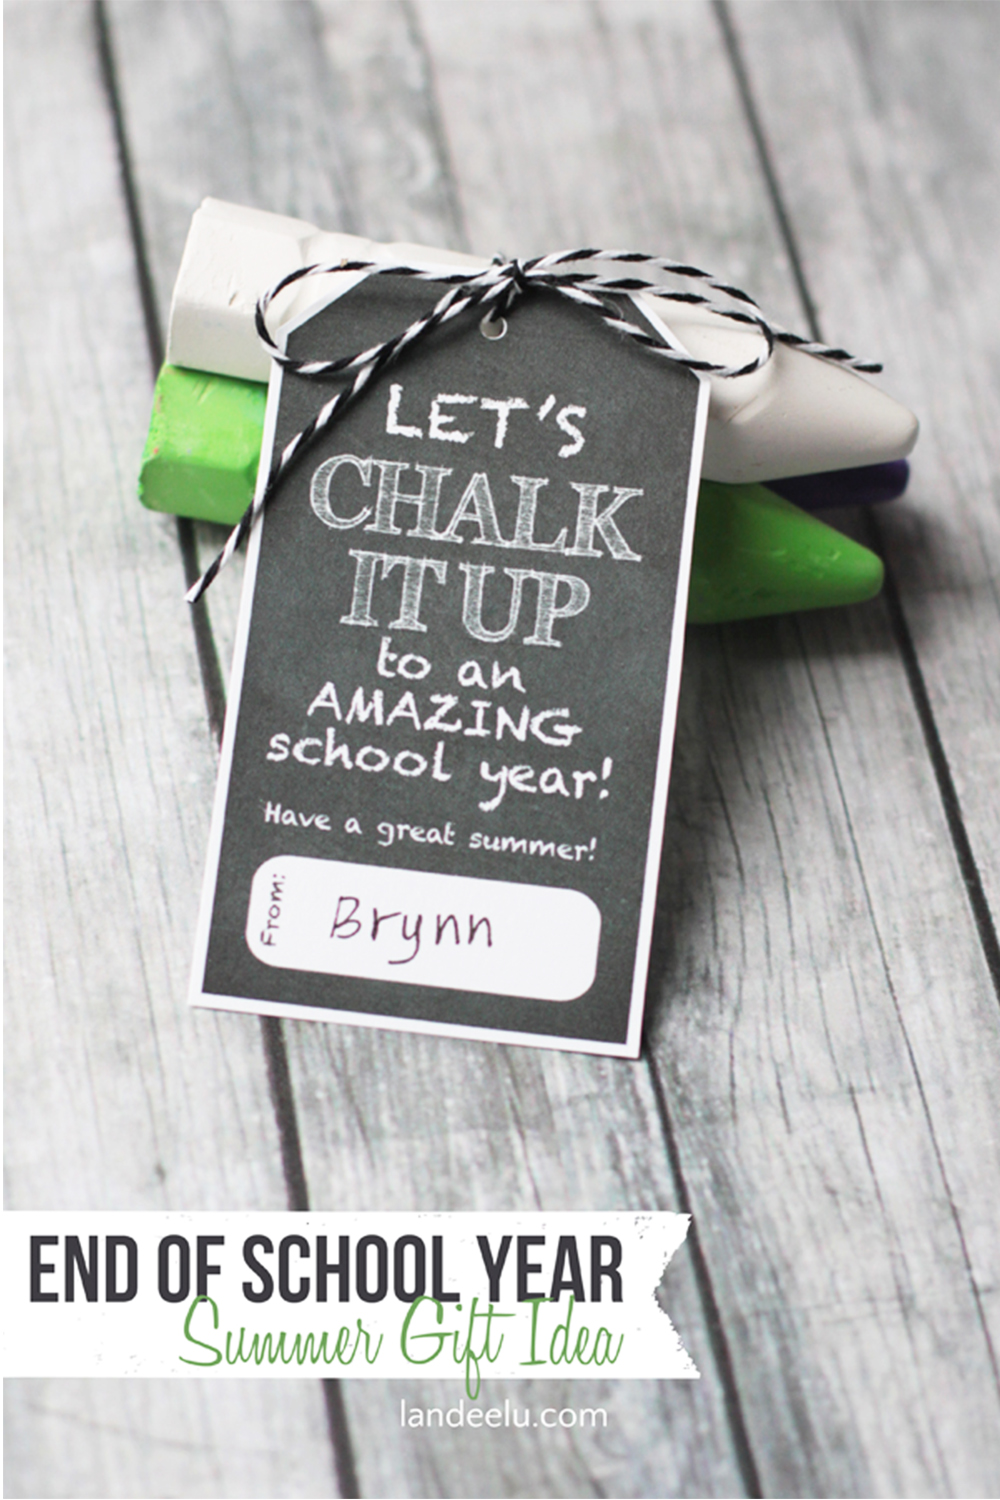 Chalk it Up Summer Gift Idea | landeelu.com Would be so cute for kids to give to classmates or for a teacher to give to students at the end of the year! #giftidea #sidewalkchalk #summer #endofschool